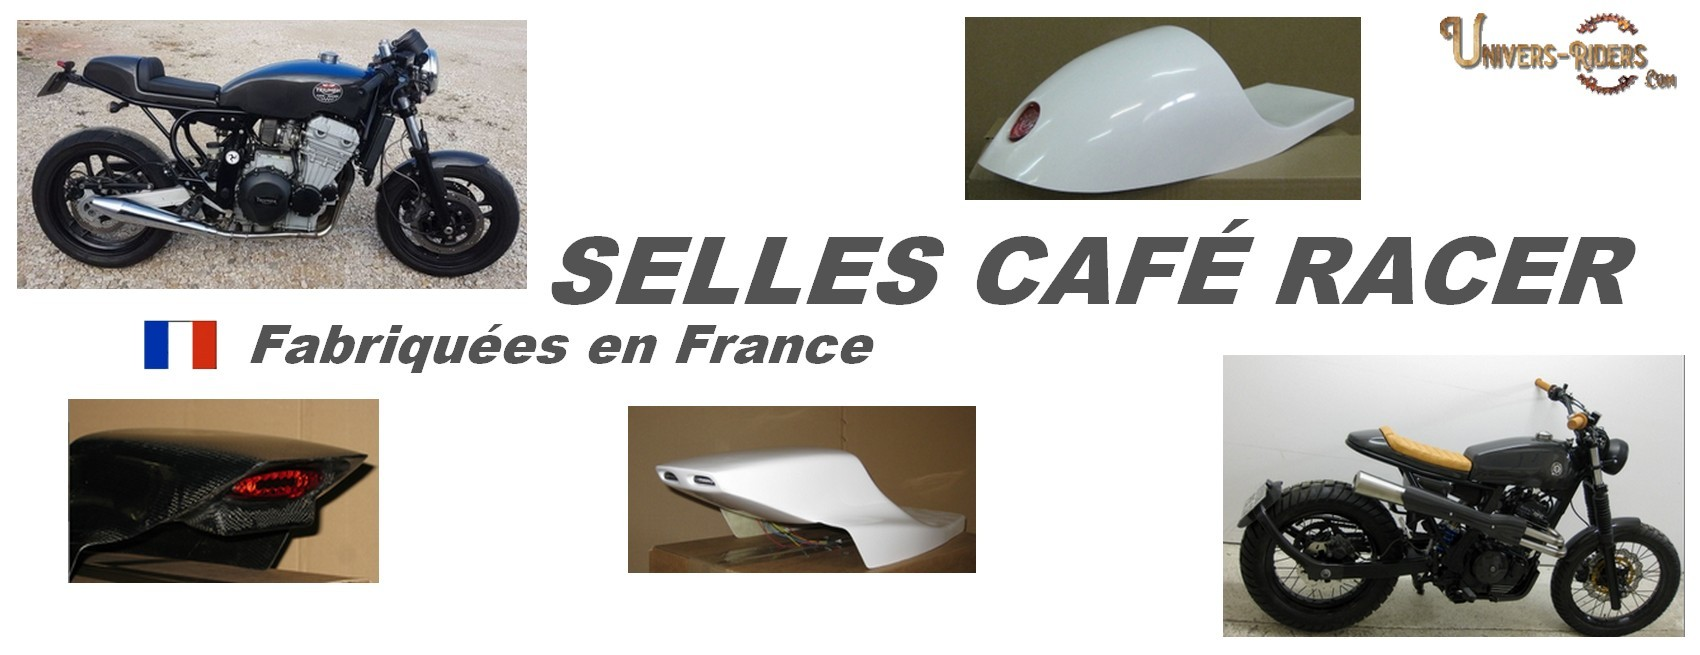 Selles motos cafe racer vintage univers riders